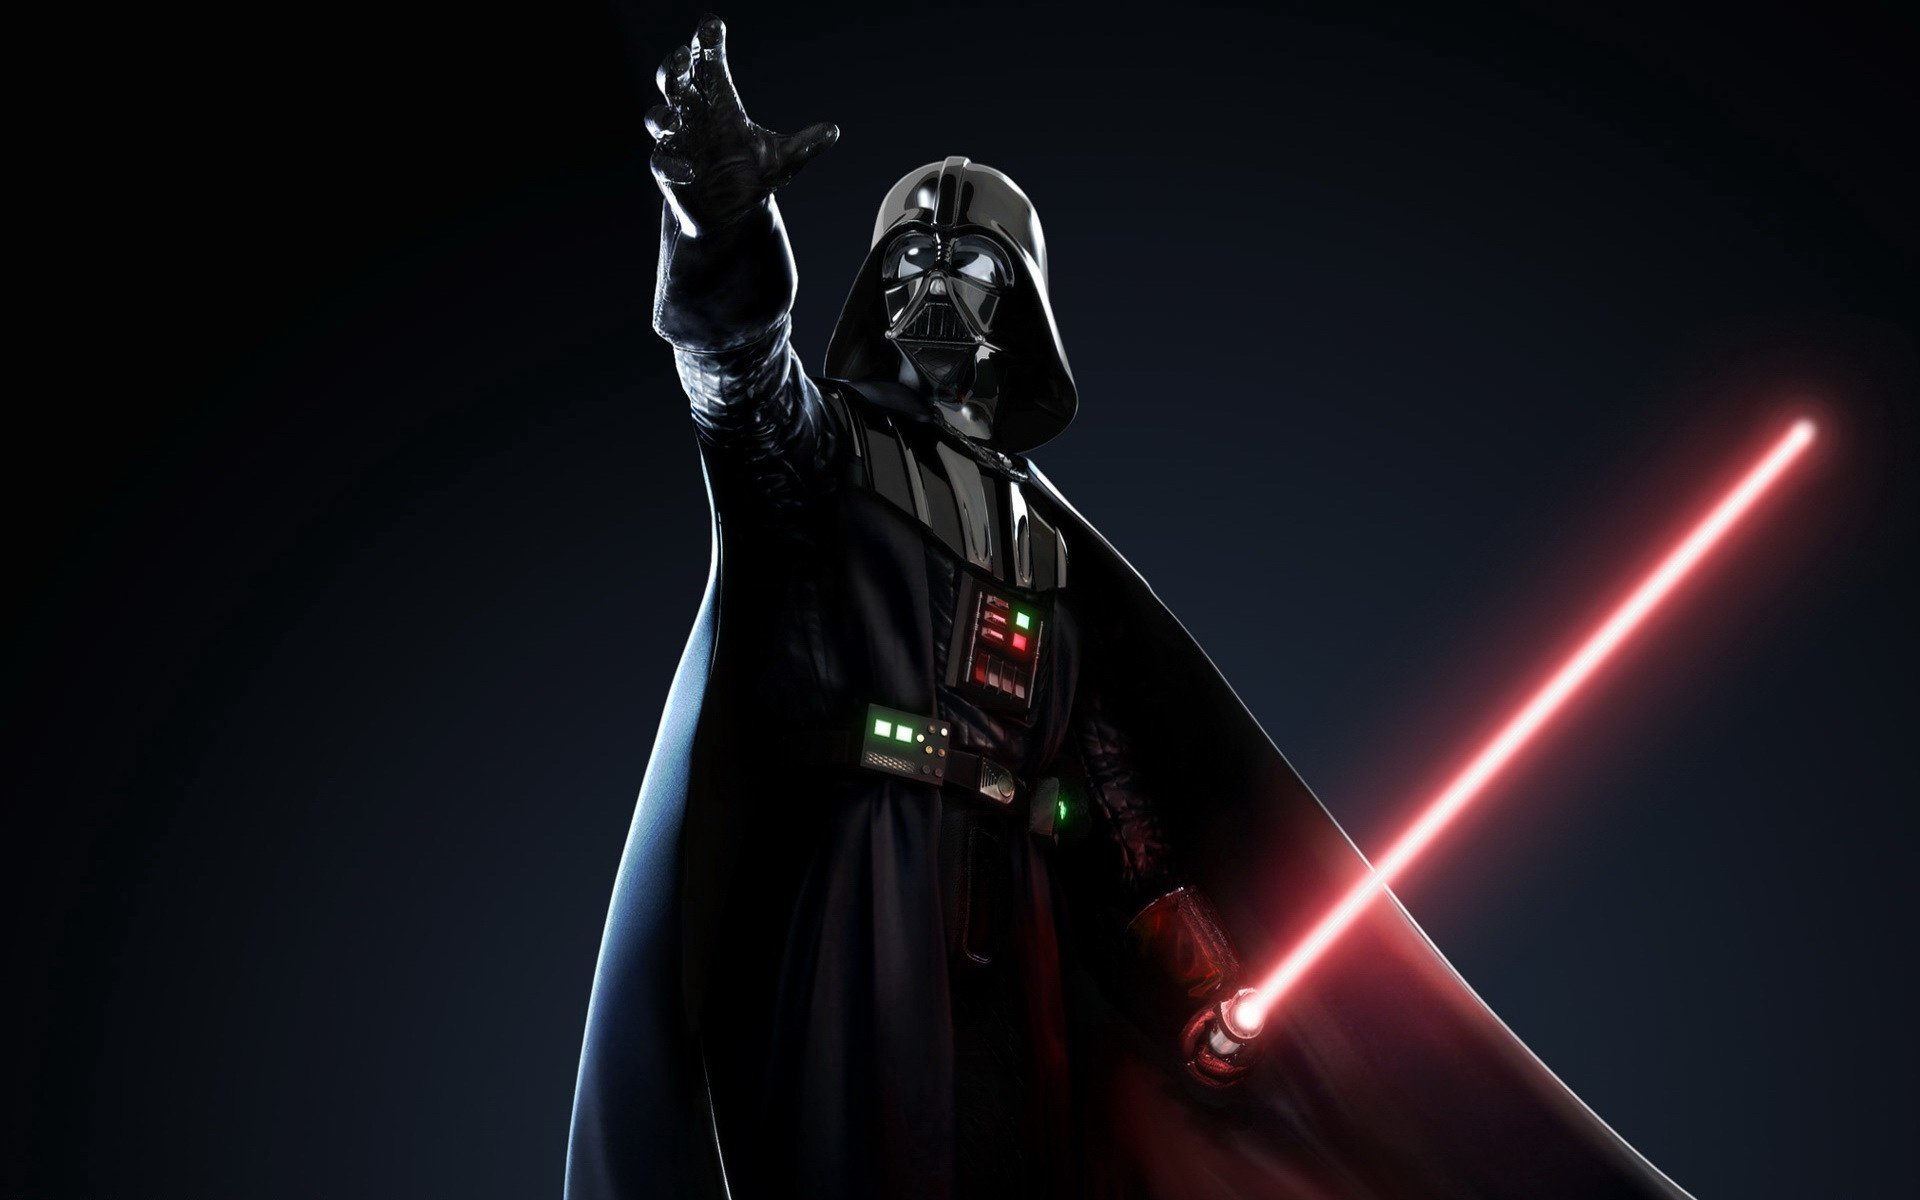 best star wars wallpaper id459148 for high resolution hd 1920x1200 desktop